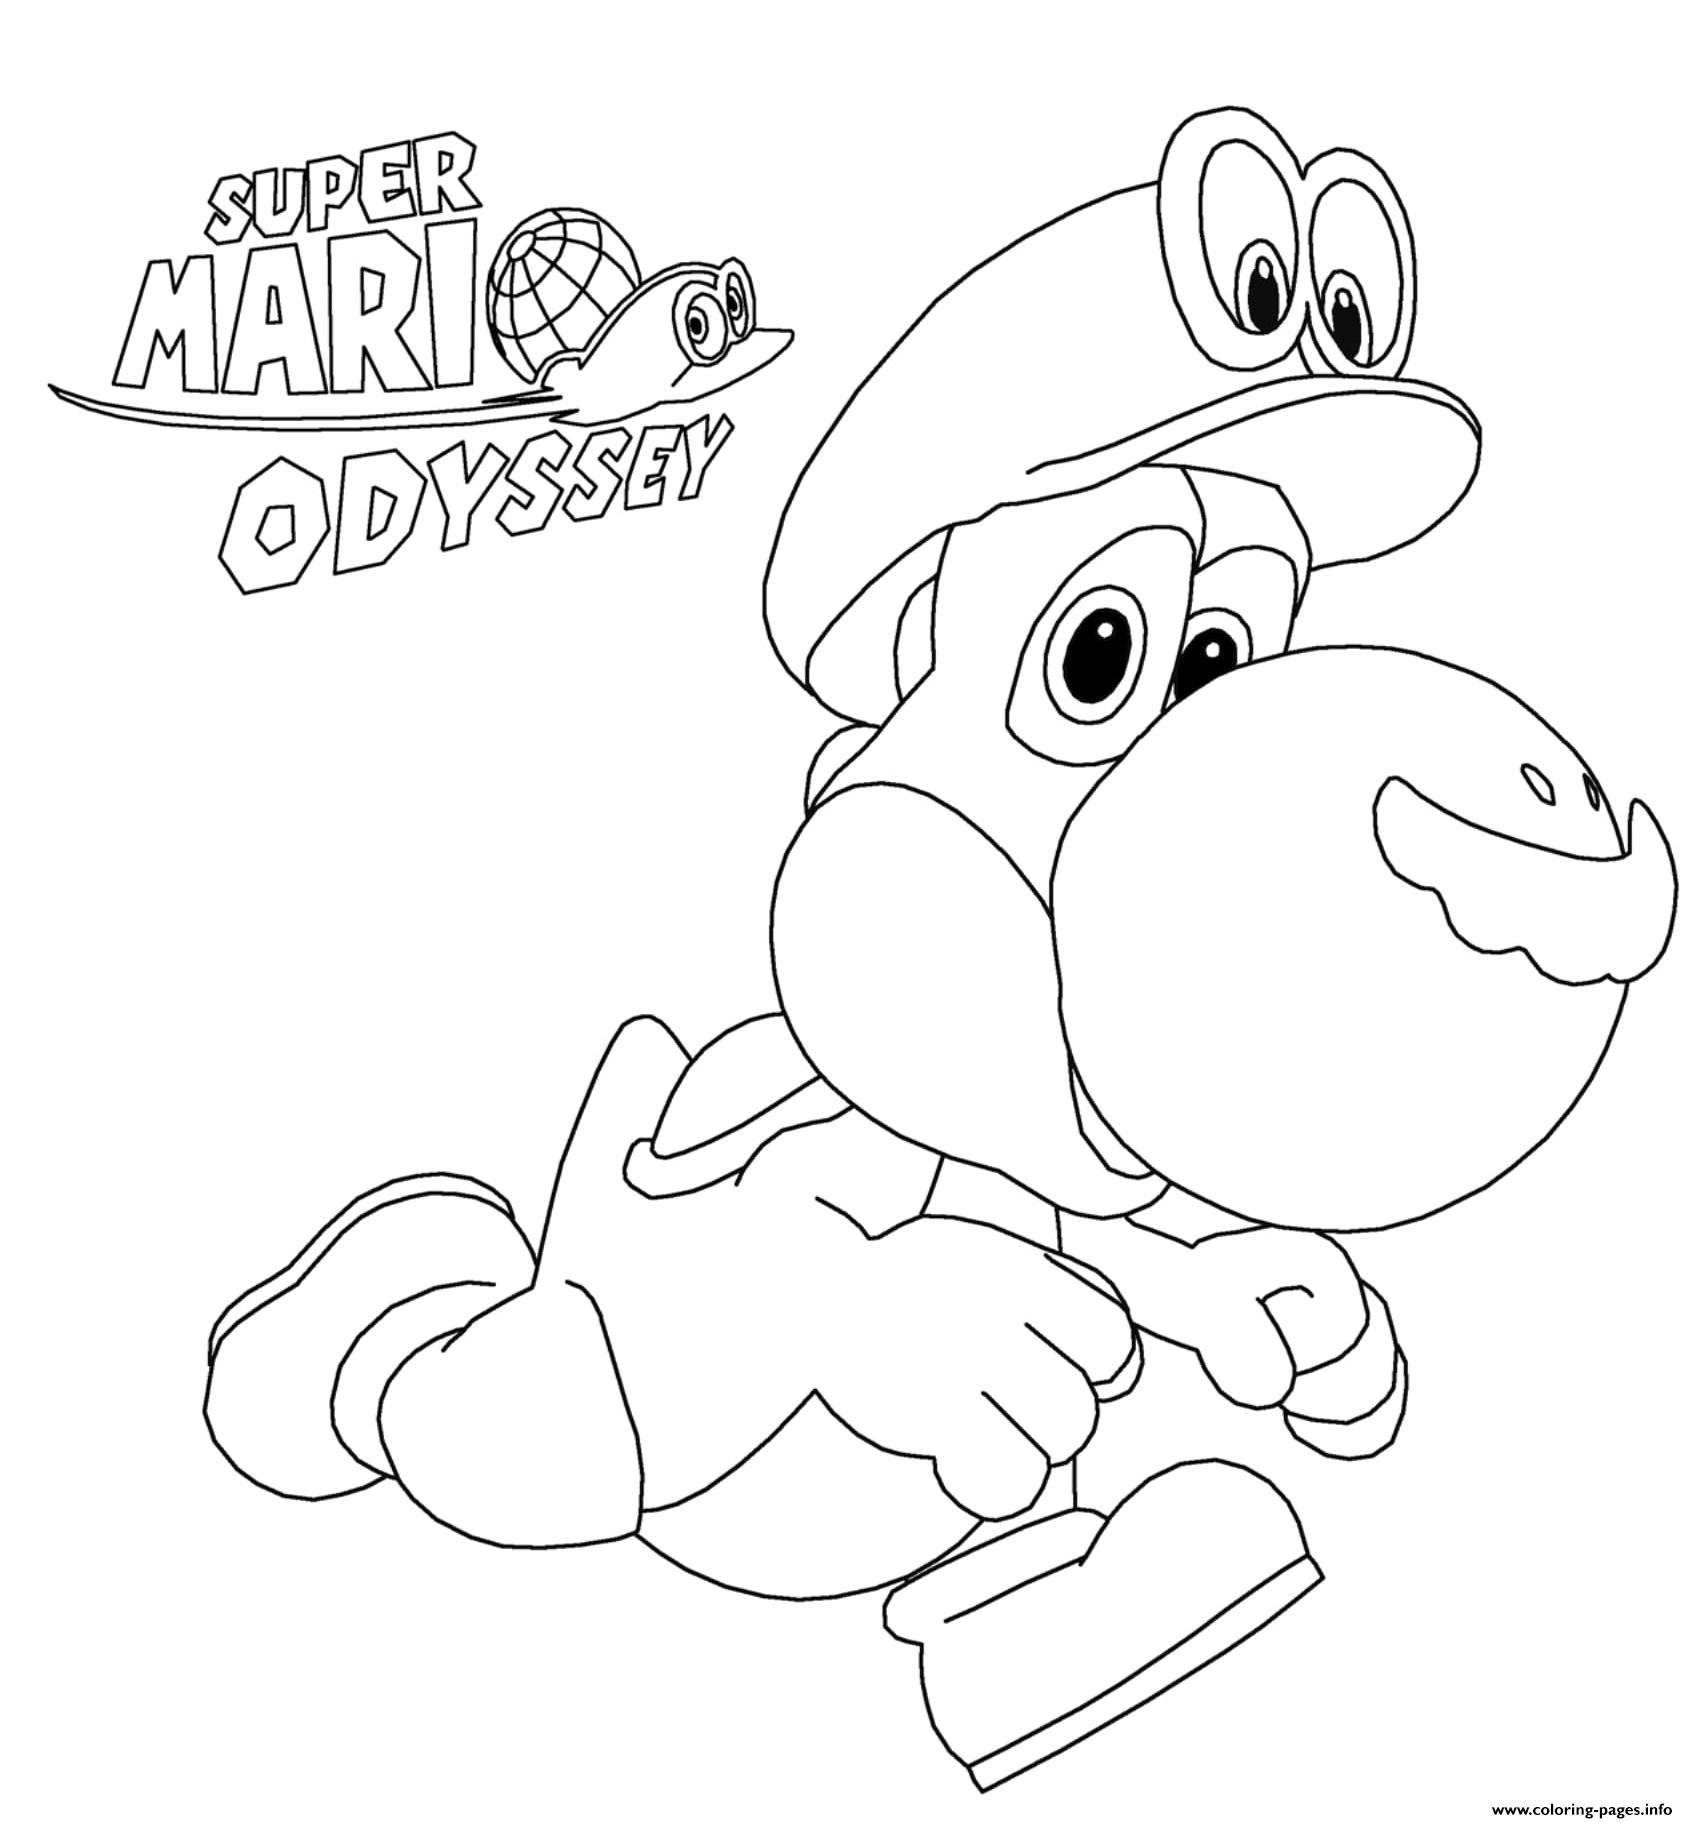 Super Mario Odyssey Yoshi Nintendo Coloring Pages Printable